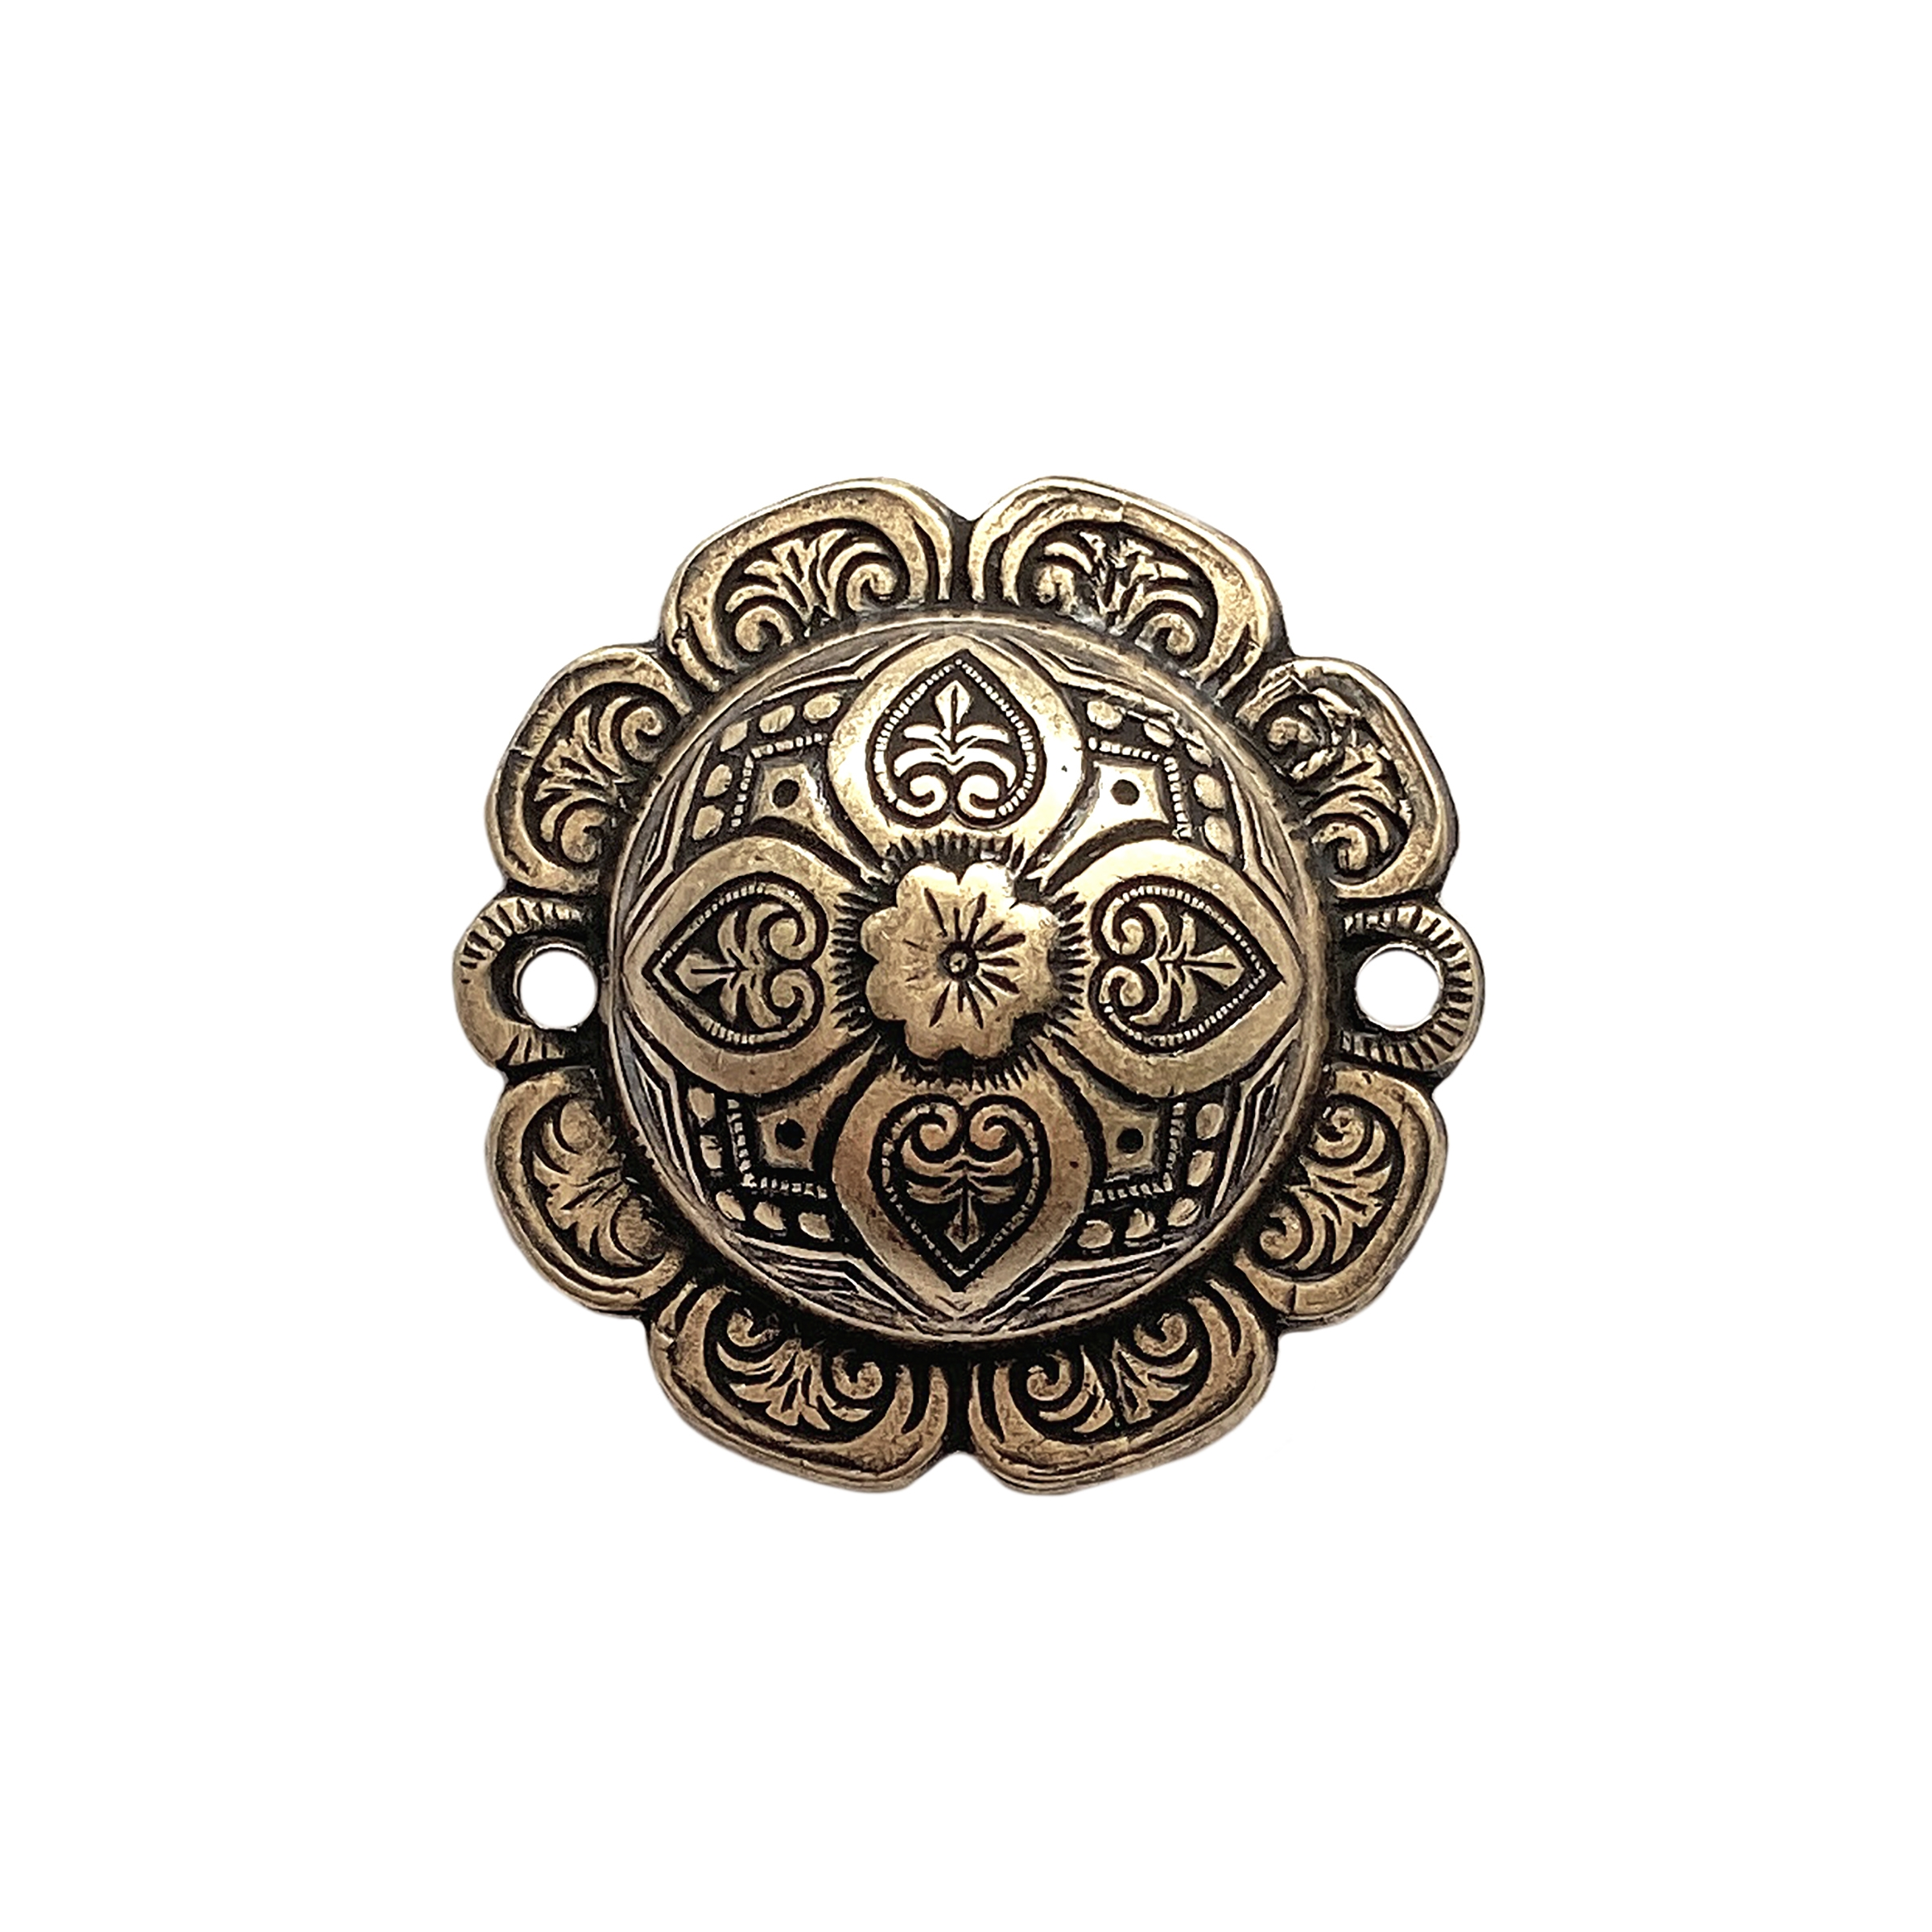 Domed Connector, Brass Ox, Connector, 27mm, Brass Stamping, Domed, Dapt, Victorian, Floral Pattern, Floral, Floral Design, Connectors, Us Made, Nickel Free, B'sue Boutiques, Vinatge Supplies, Jewelry Findings, Jewelry Supplies, Stampings Brass, 02079